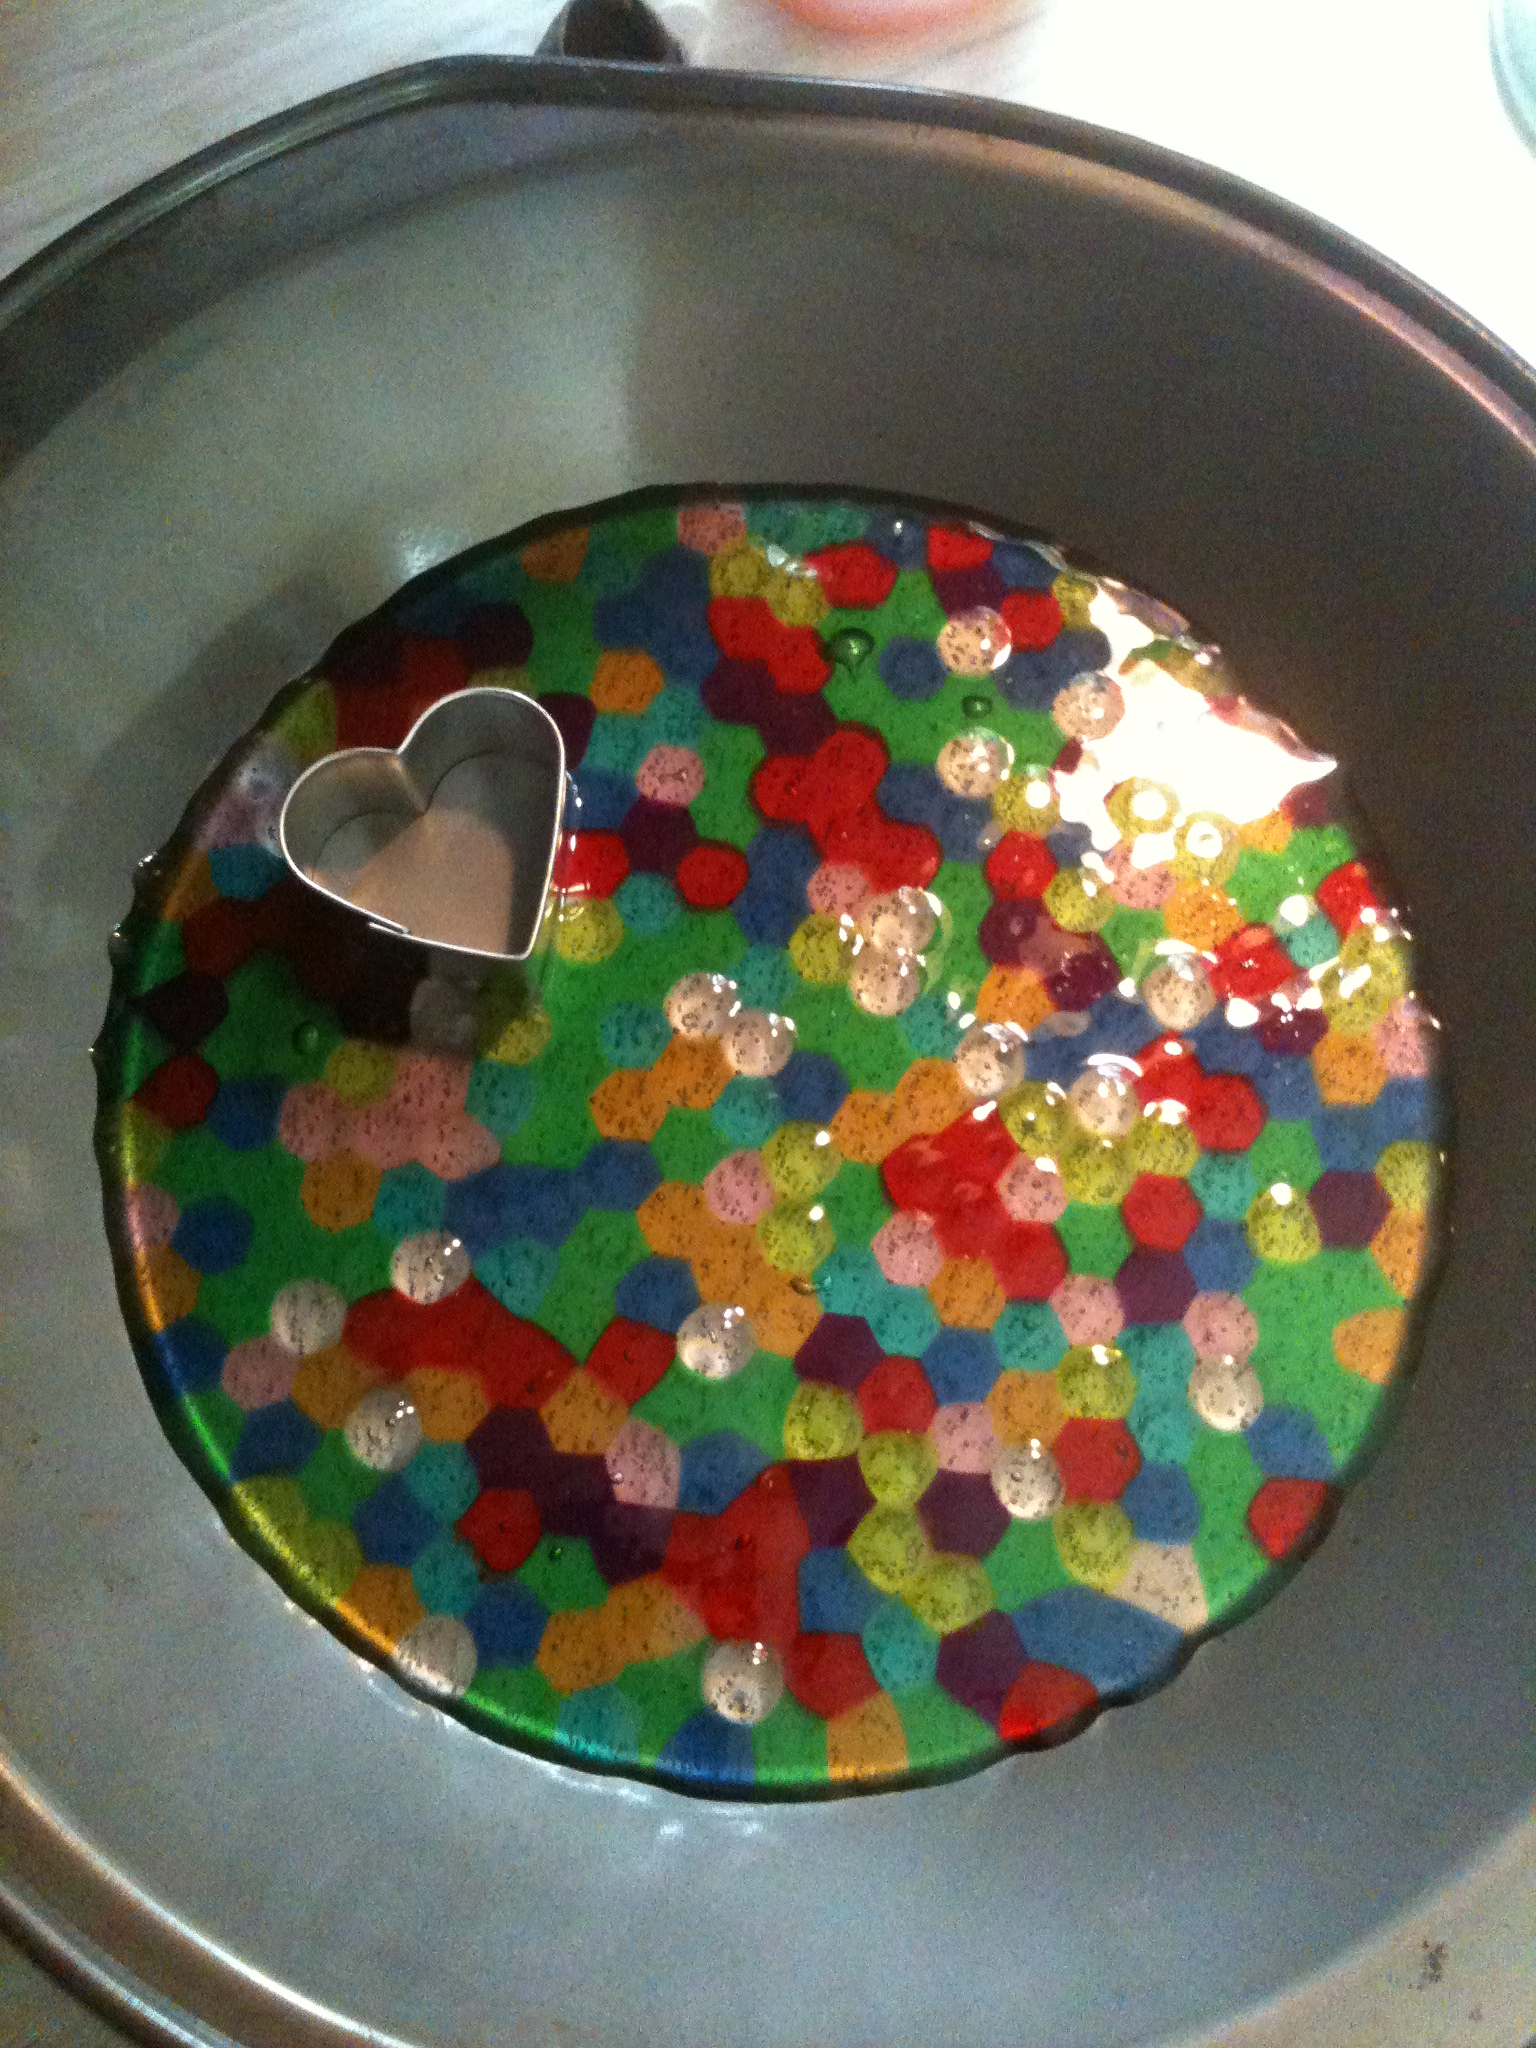 Plastic beads for crafts - Baked